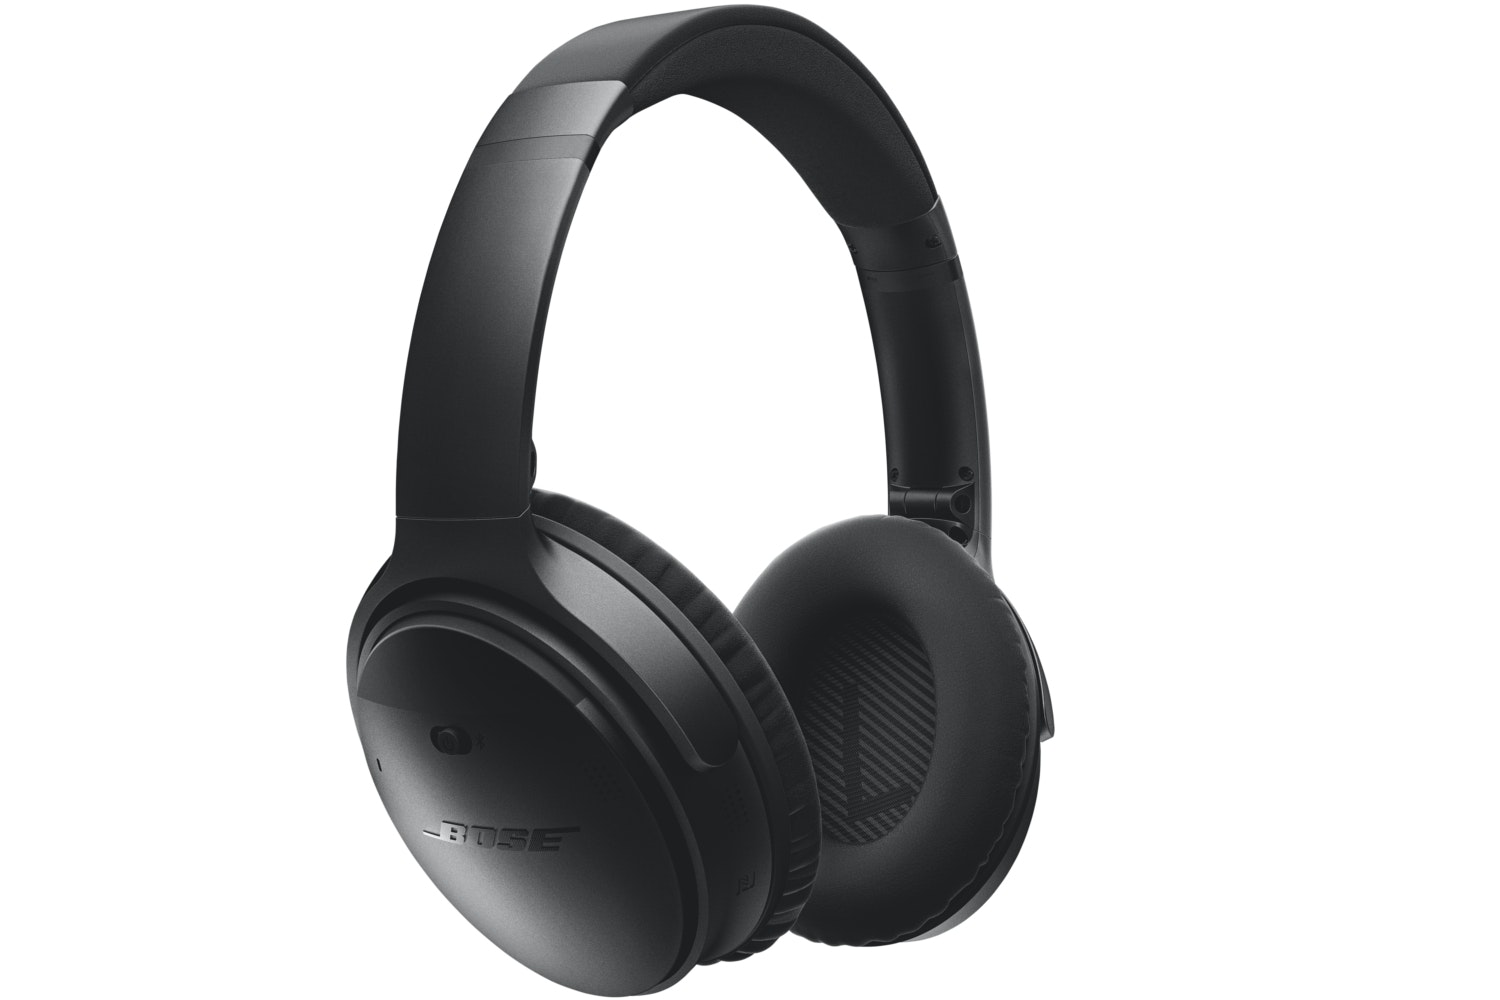 Bose QuietComfort 35 Wireless Headphones | Black